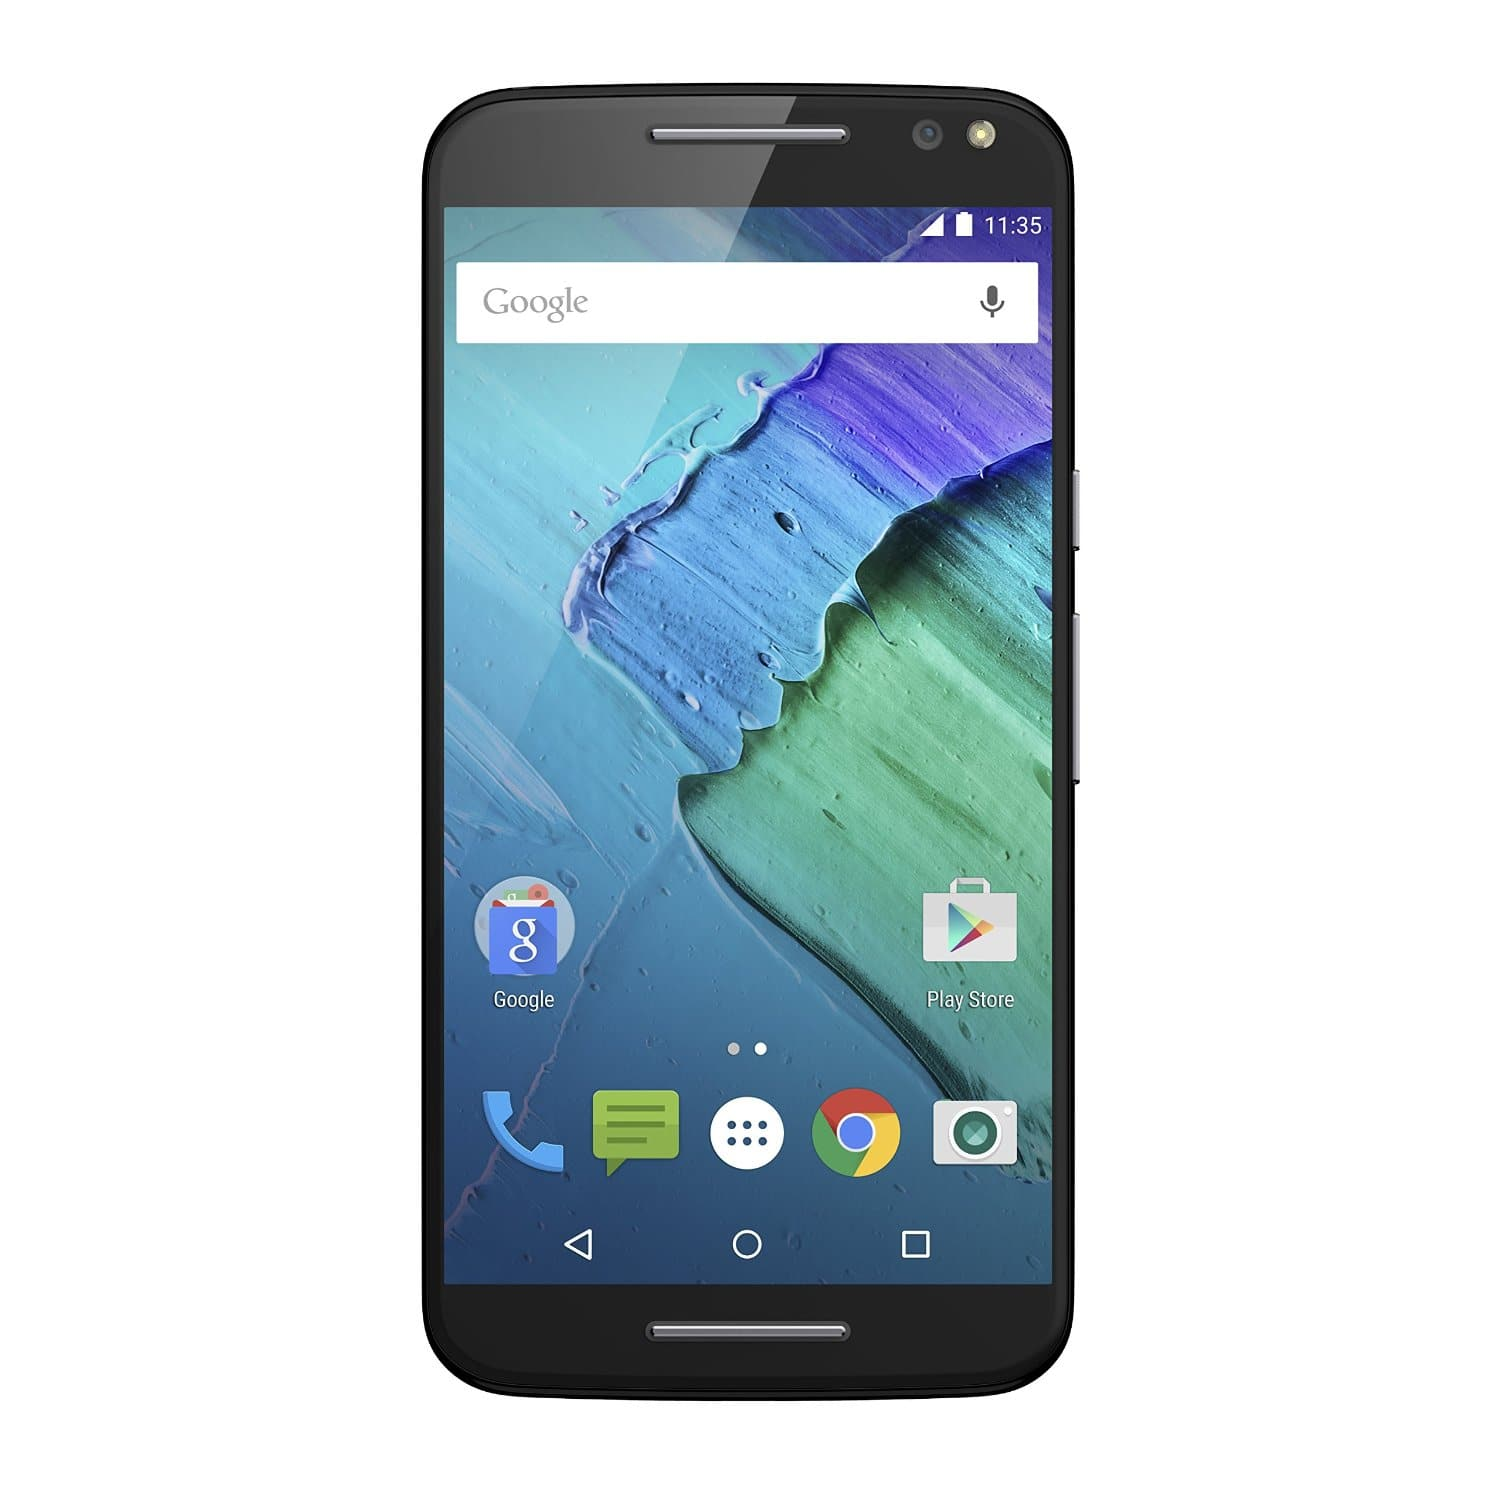 "Motorola Moto X Pure Edition UNLOCKED 5.7"" Android 5.1.1 Mobile Phone - 16GB - Black 249.99"